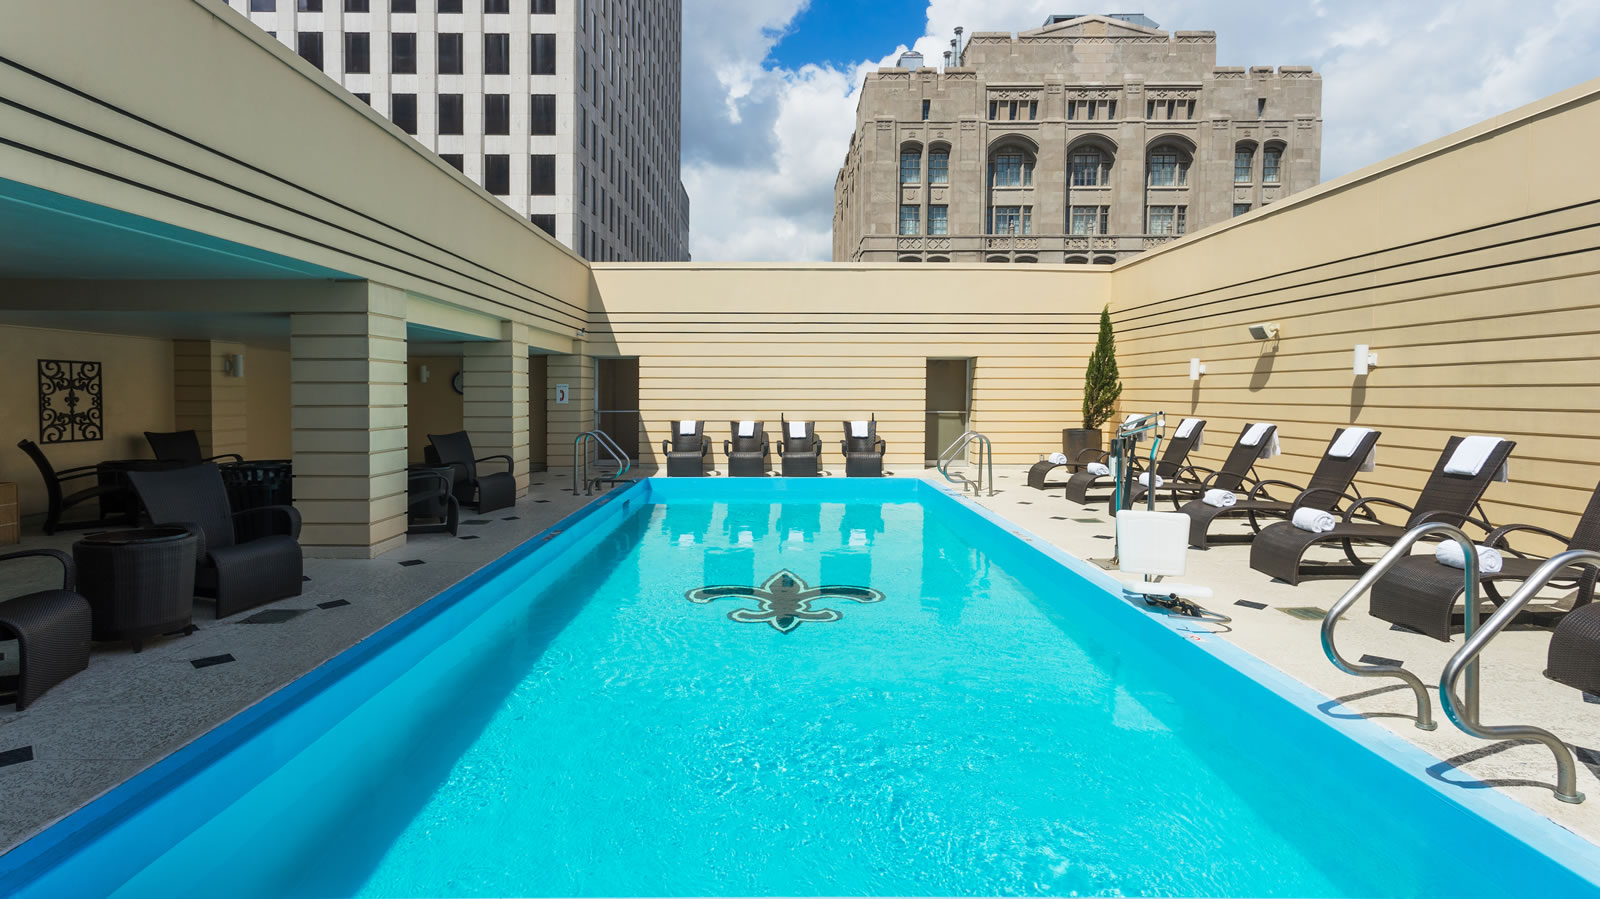 Rooftop pool at New Orleans hotel